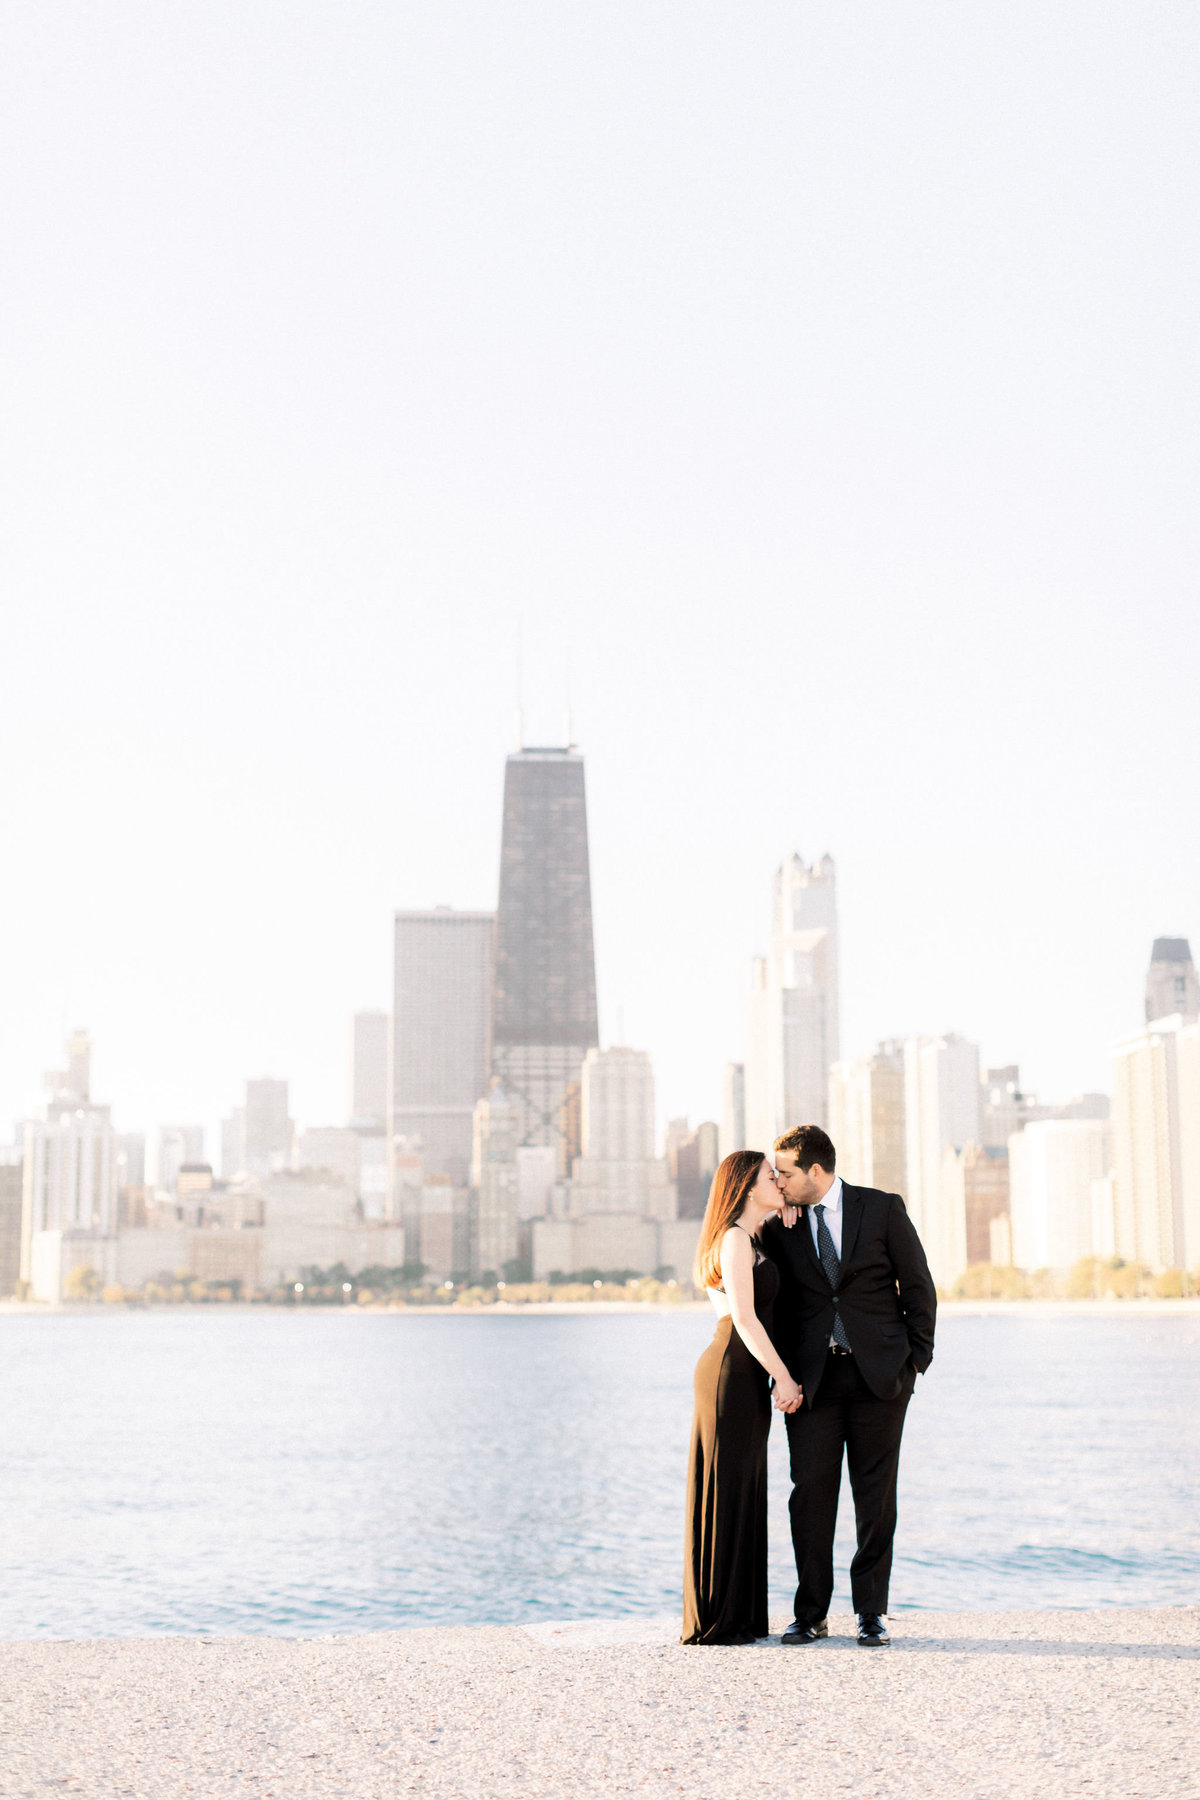 TiffaneyChildsPhotography-ChicagoWeddingPhotographer-Alana+Giancarlo-NorthAvenueBeachUnionStationEngagementSession-12